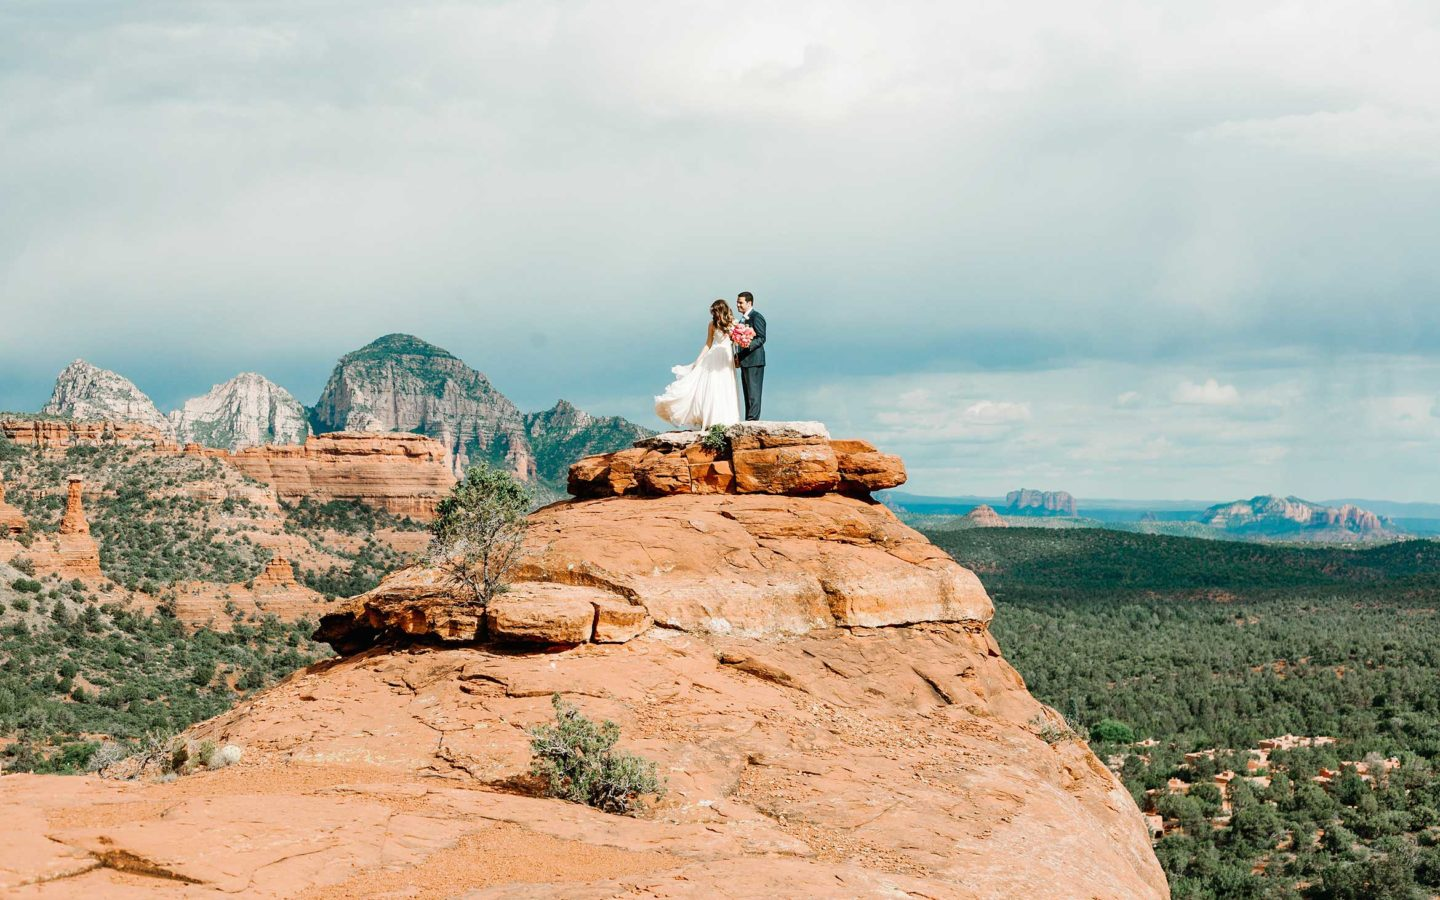 bride groom in boynton canyon sedona